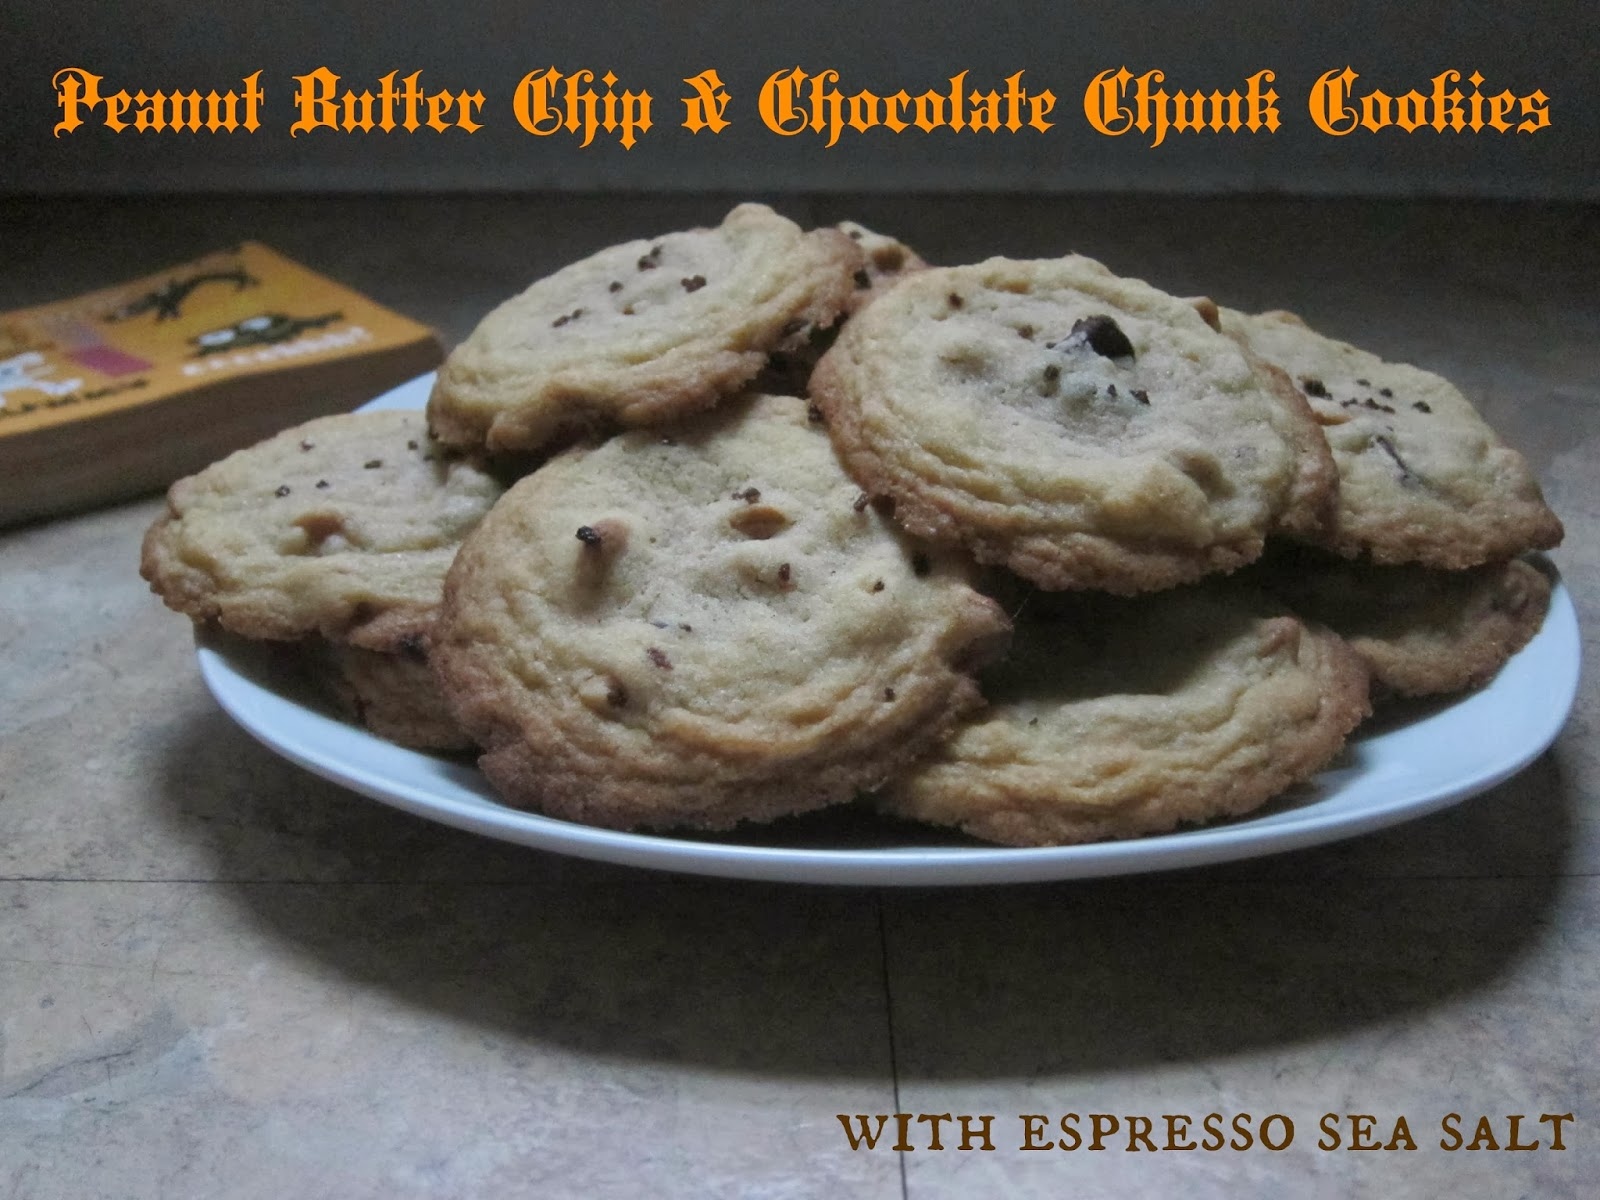 ... : Peanut Butter Chip & Chocolate Chunk Cookies with Espresso Sea Salt